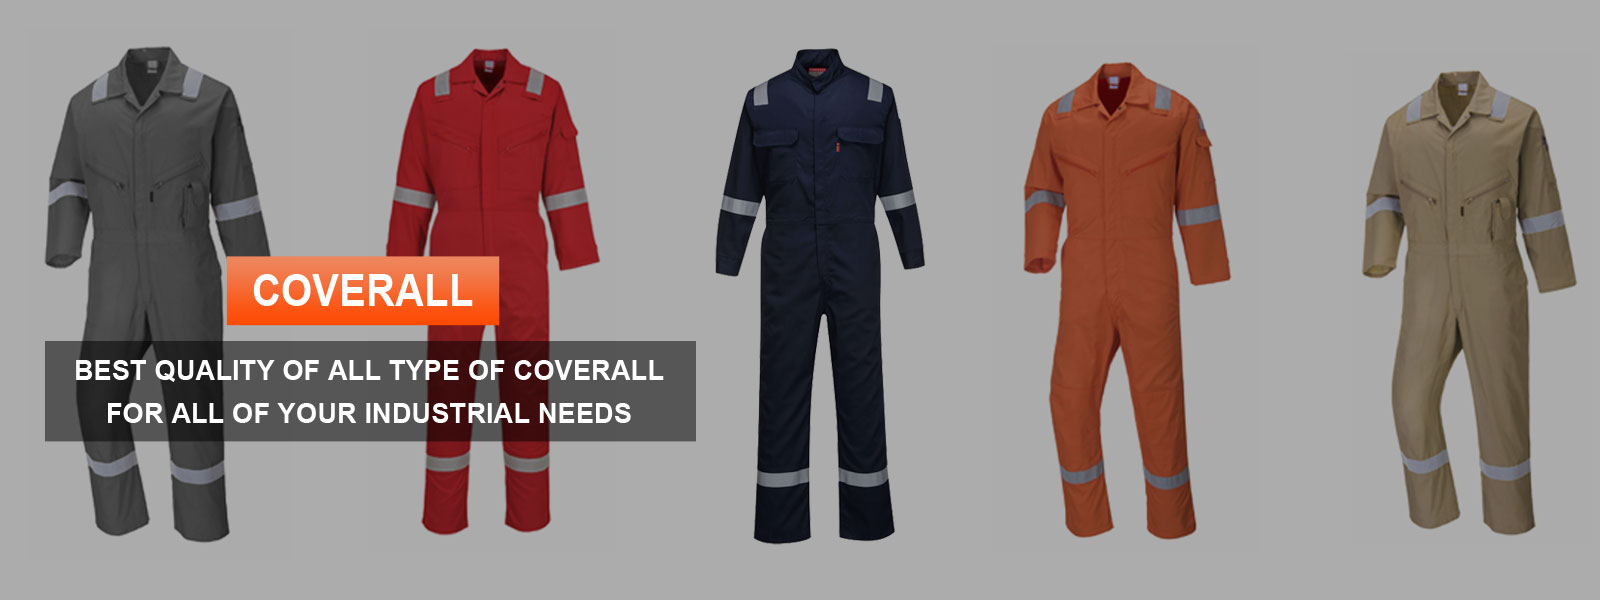 Coverall Manufacturers in Bolivia